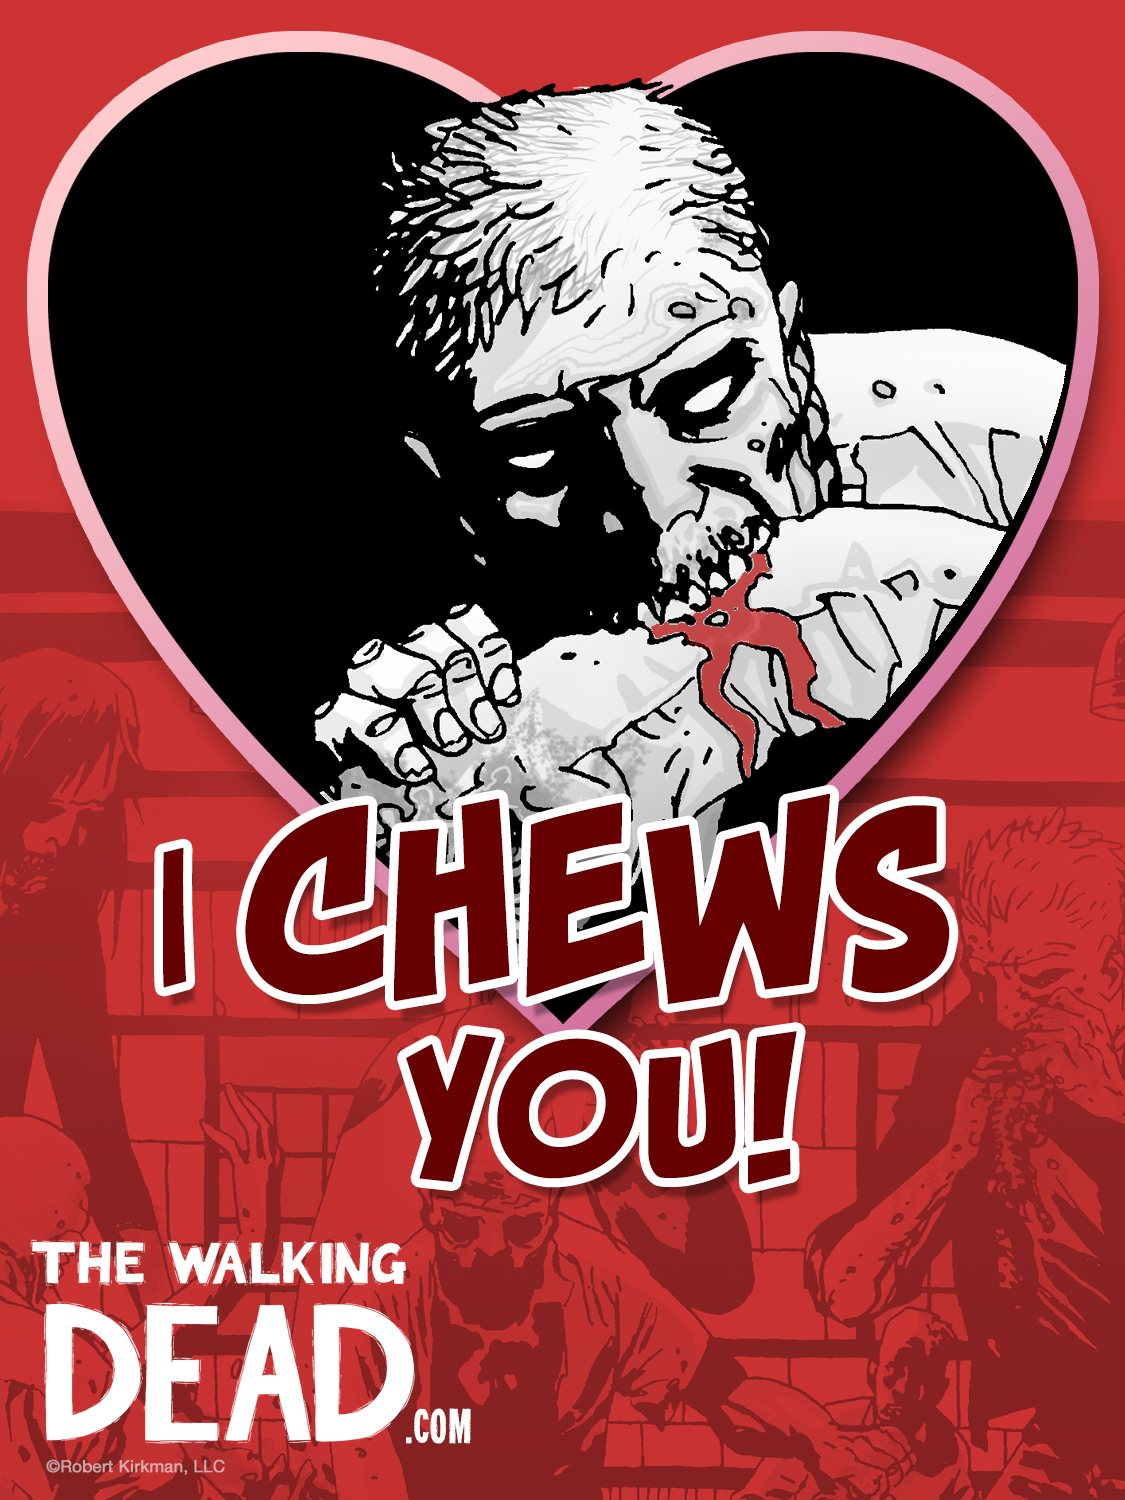 Free Download The Walking Dead Comic Iphone Wallpaper The